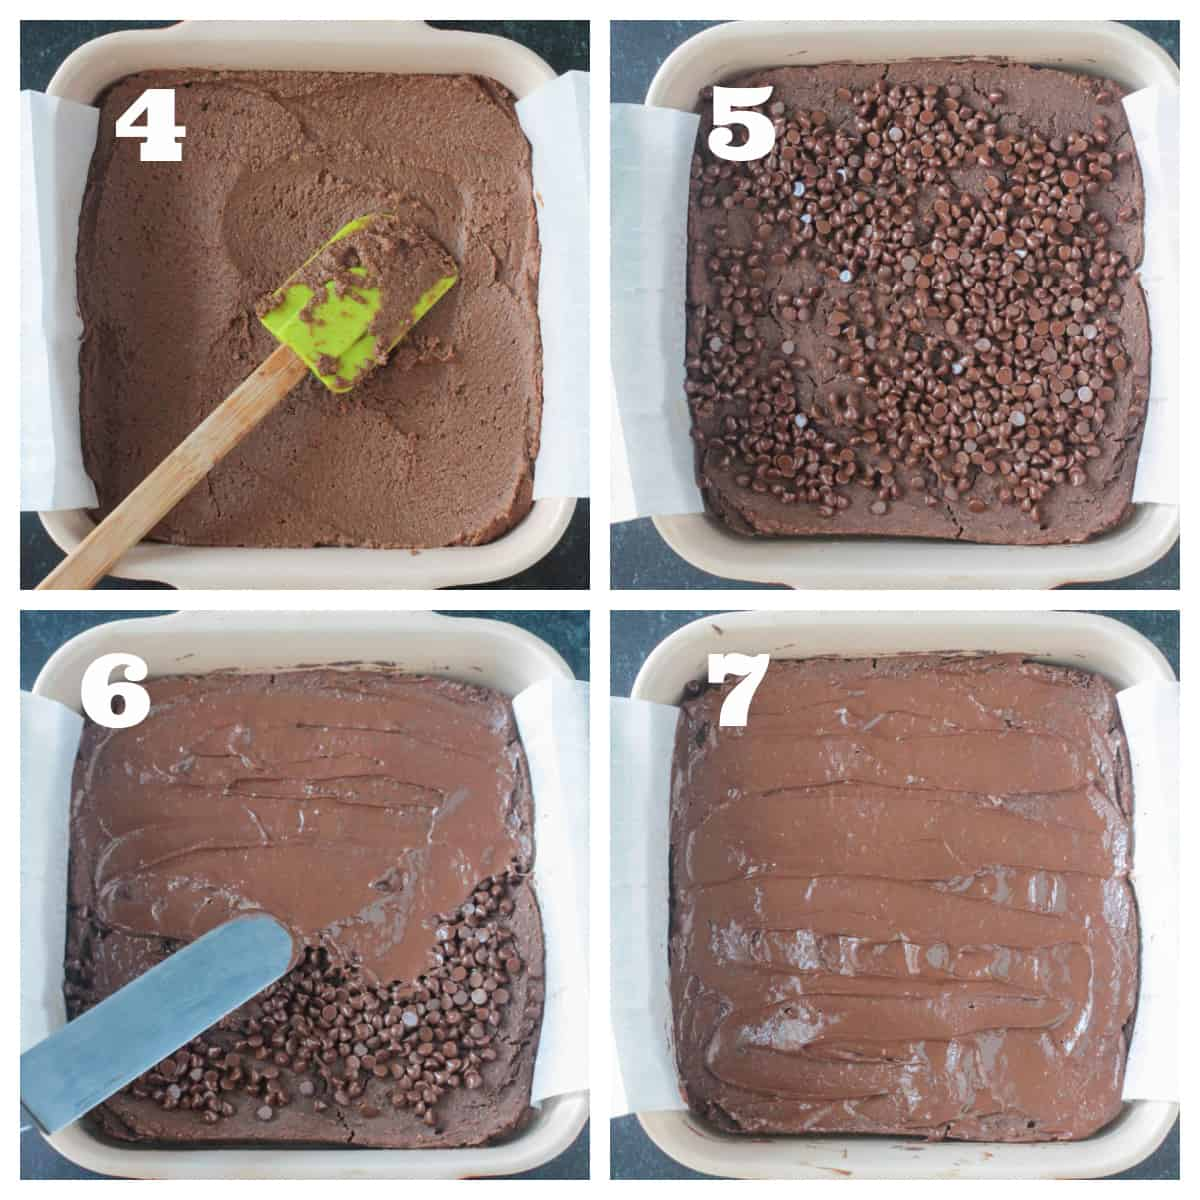 4 photo collage of spreading the batter into a pan and melting chocolate chips for frosting.